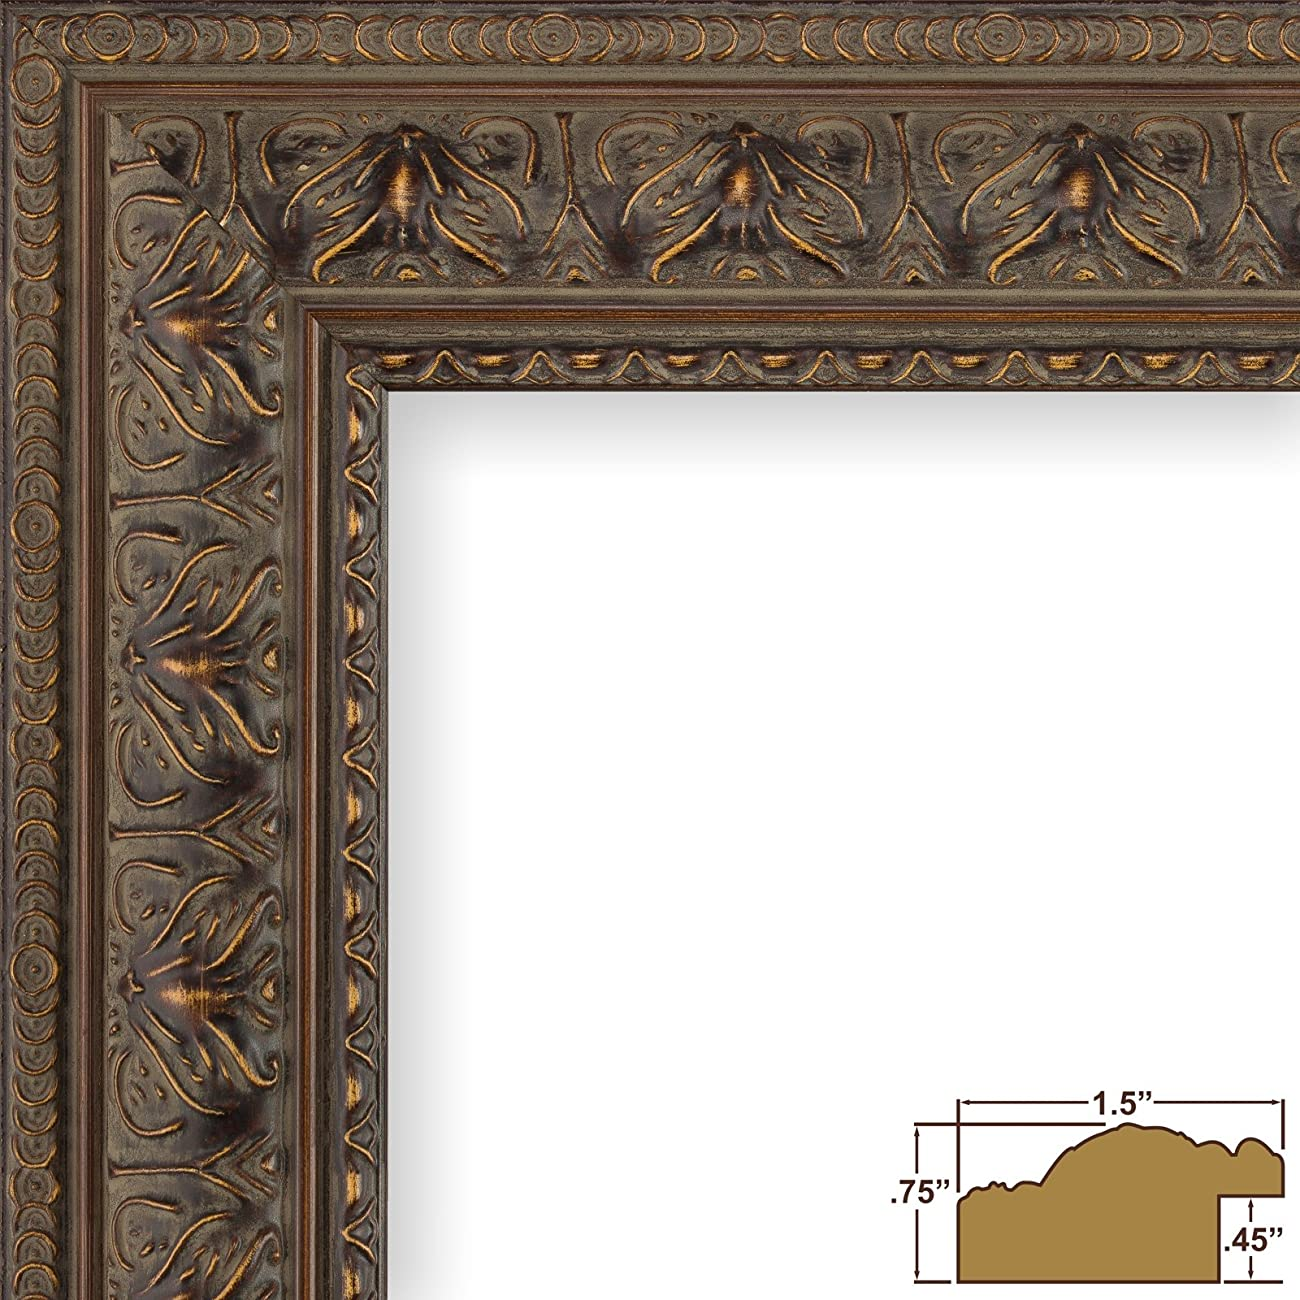 Craig Frames 9535 8 by 12-Inch Picture Frame, Antique Ornate Finish, 1.5-Inch Wide, Aged Mahogany 0